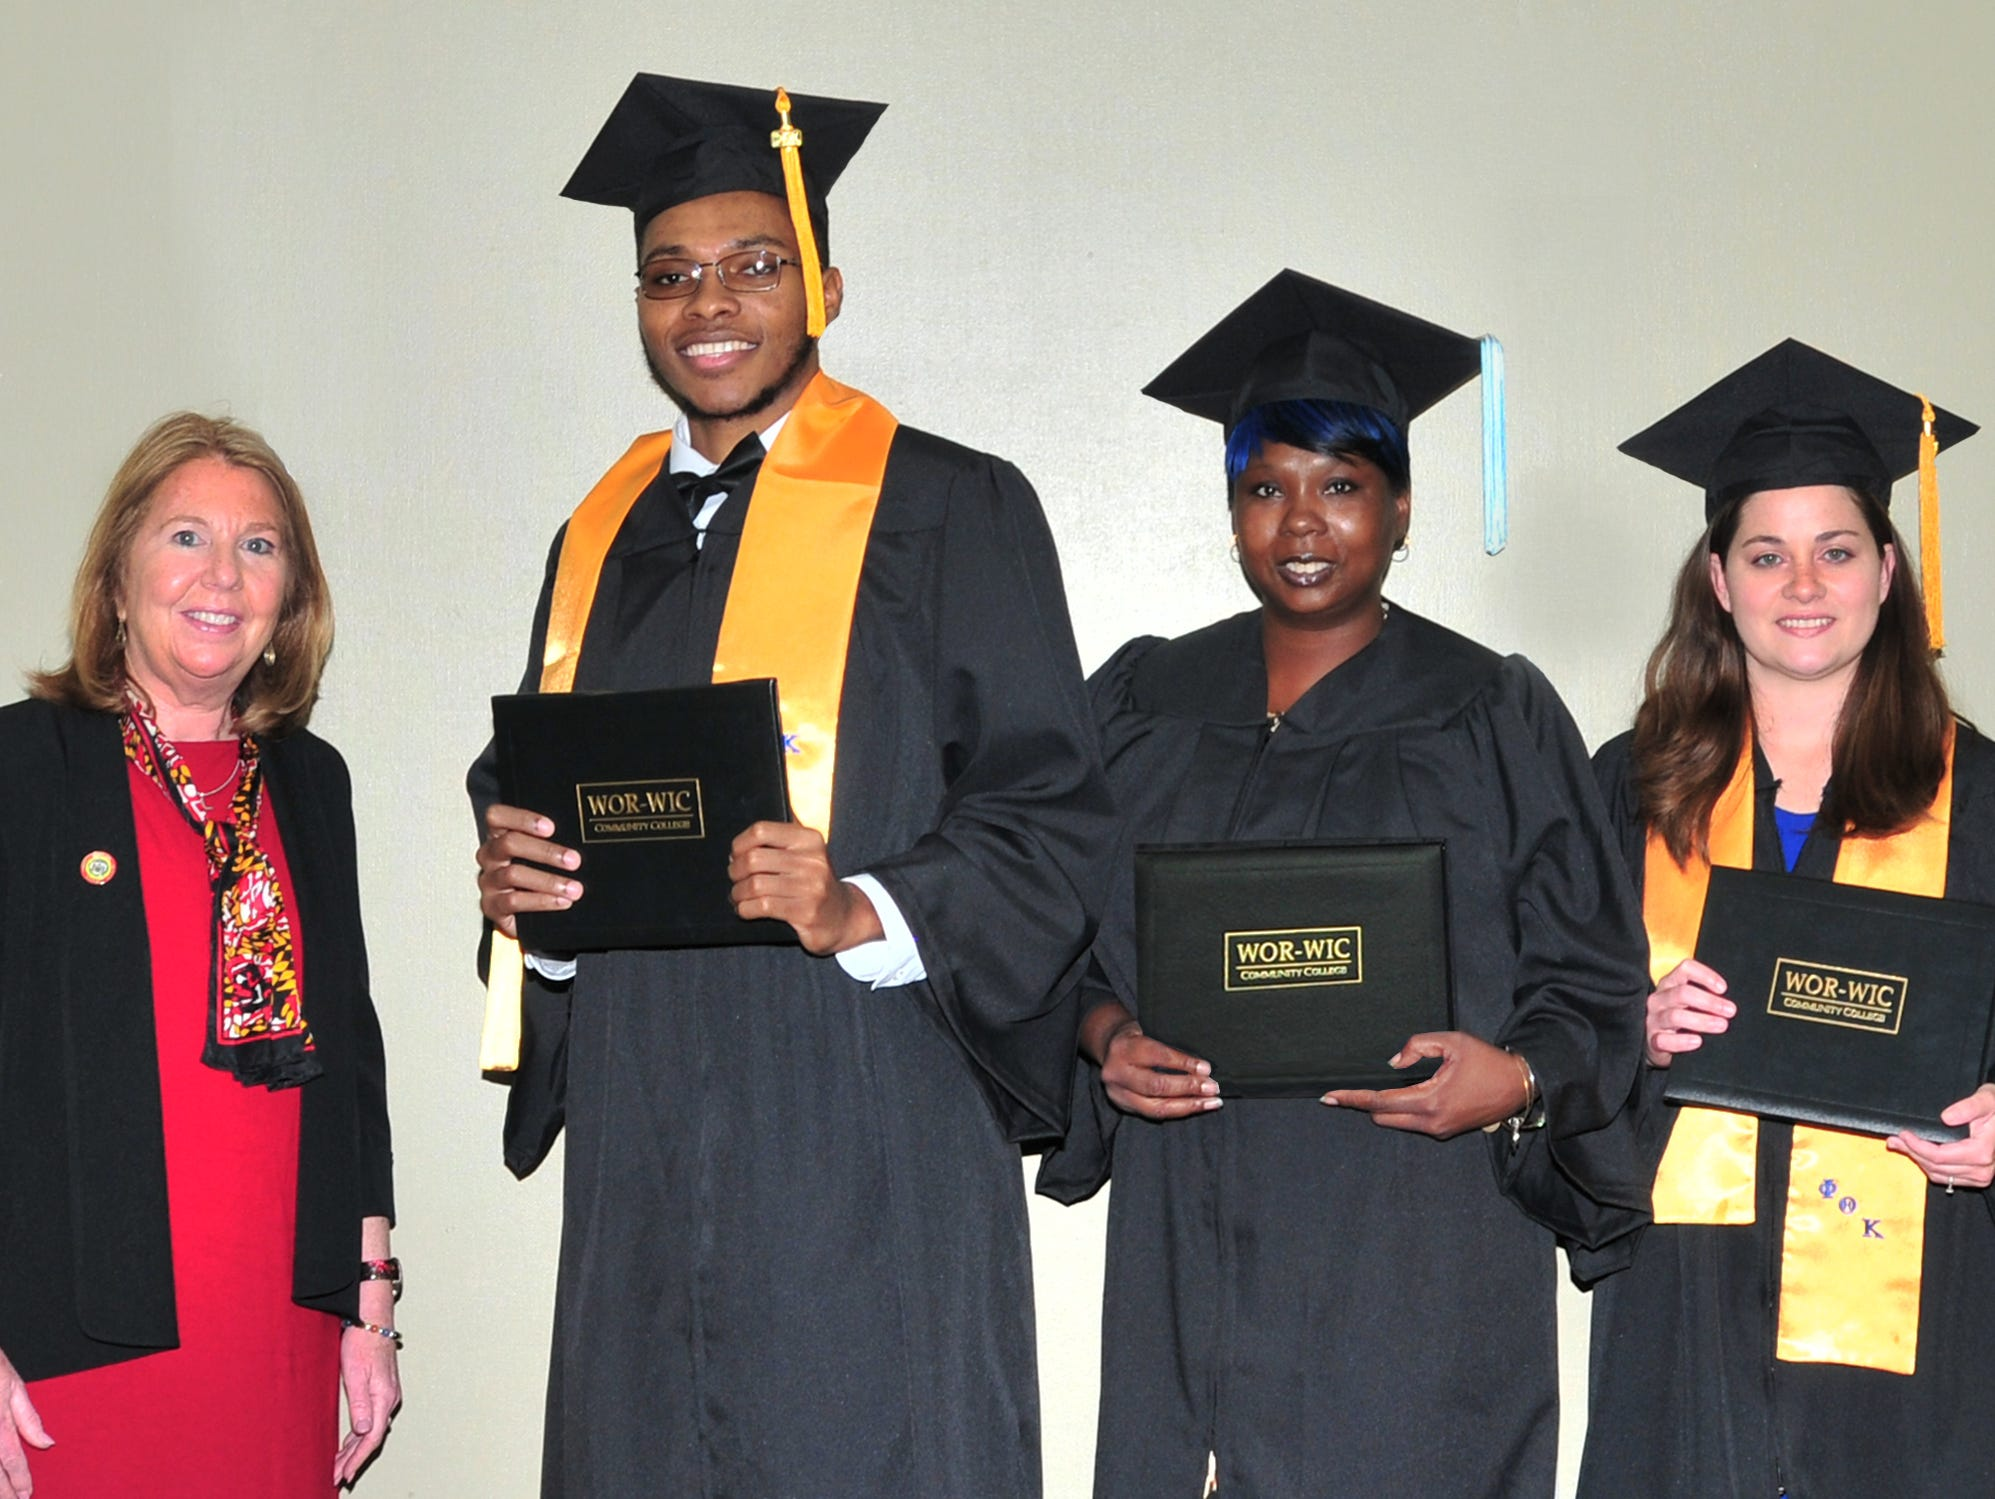 Sen. Mary Beth Carozza, R-38, of Ocean City, at left, congratulates some of the graduates from Somerset County who received their associate degrees at Wor-Wic Community College. From left, next to Carozza, are Deshawn Carr, Angela Whidbee, and Alison Shores.